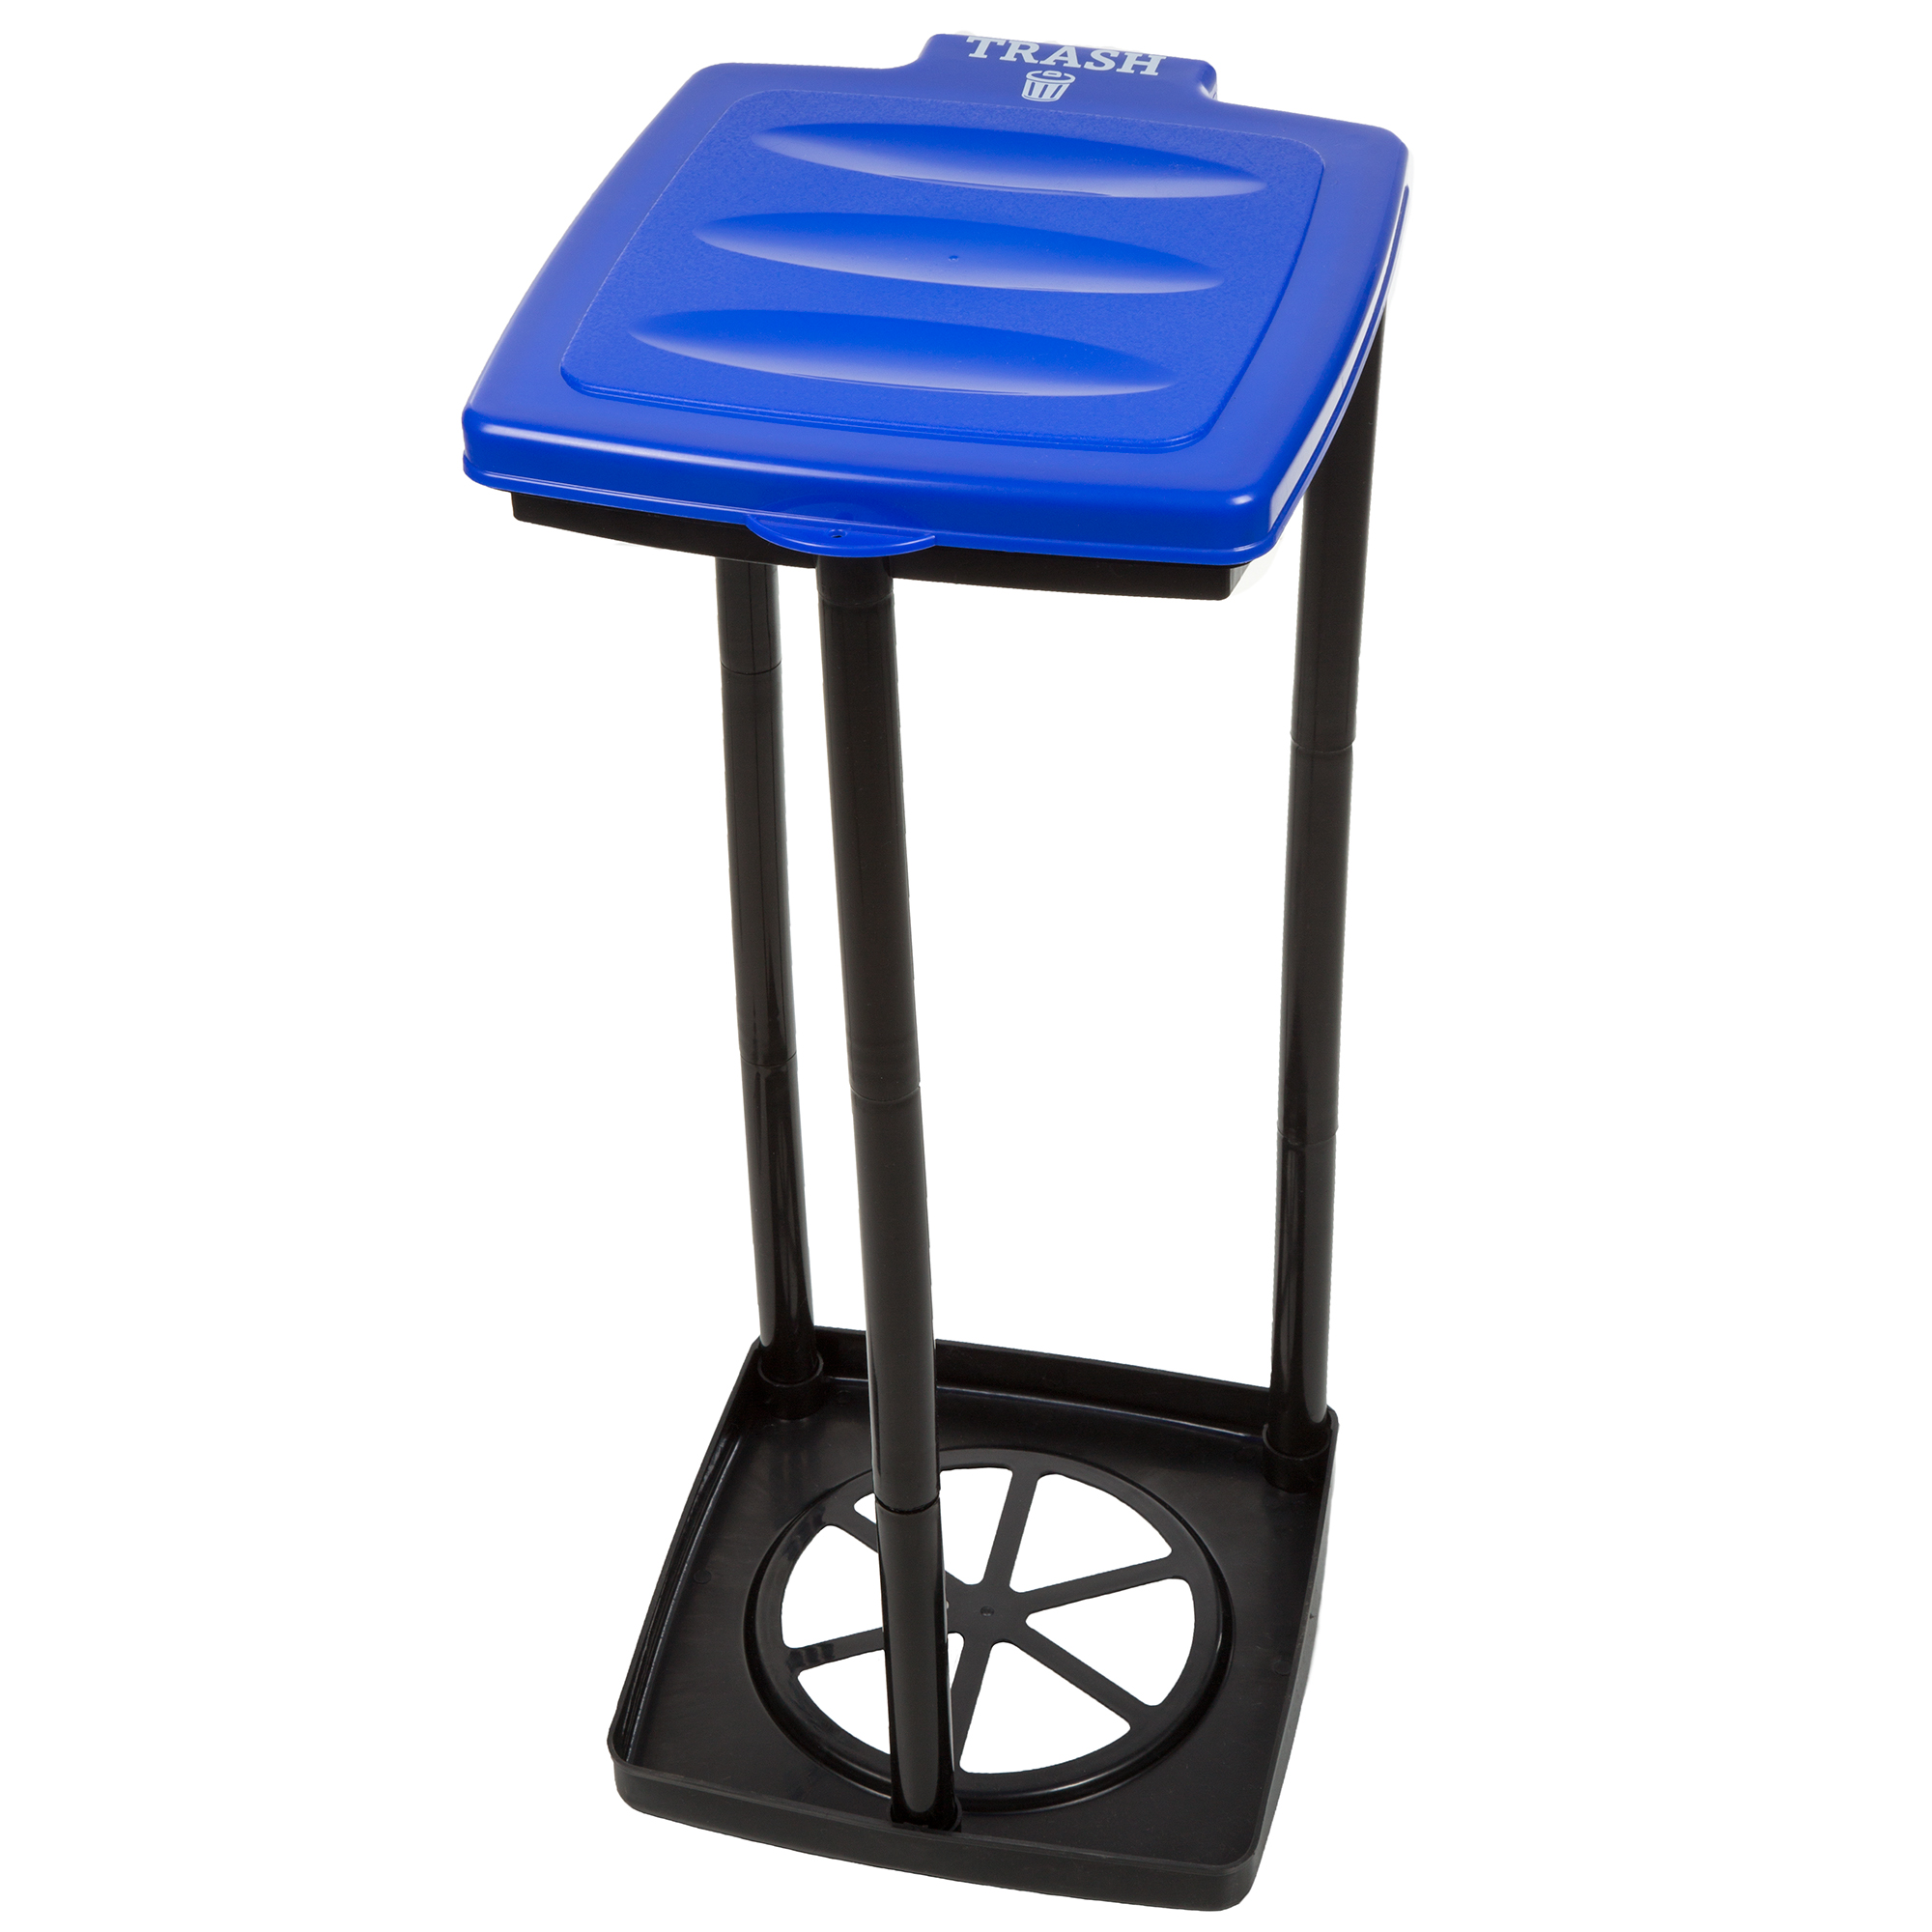 Outdoors Portable Garbage Trash Bag Holder by Wakeman